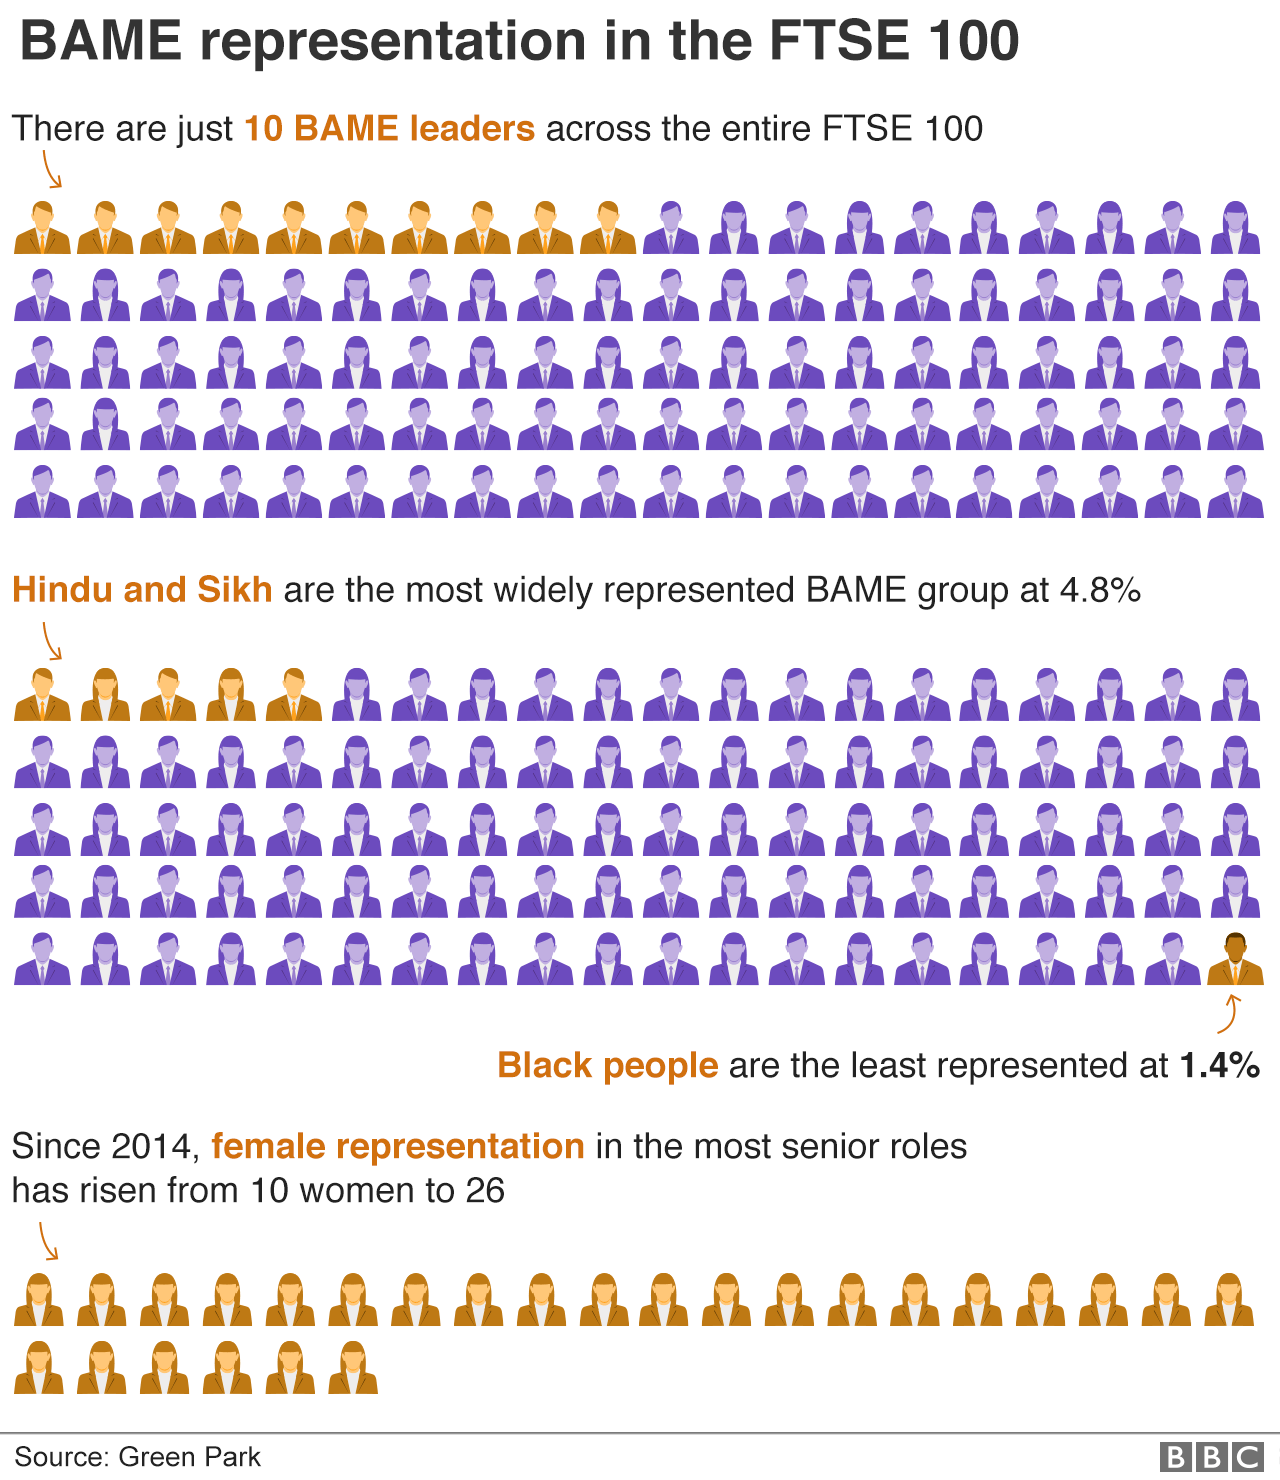 BAME in FTSE 100 positions infographic